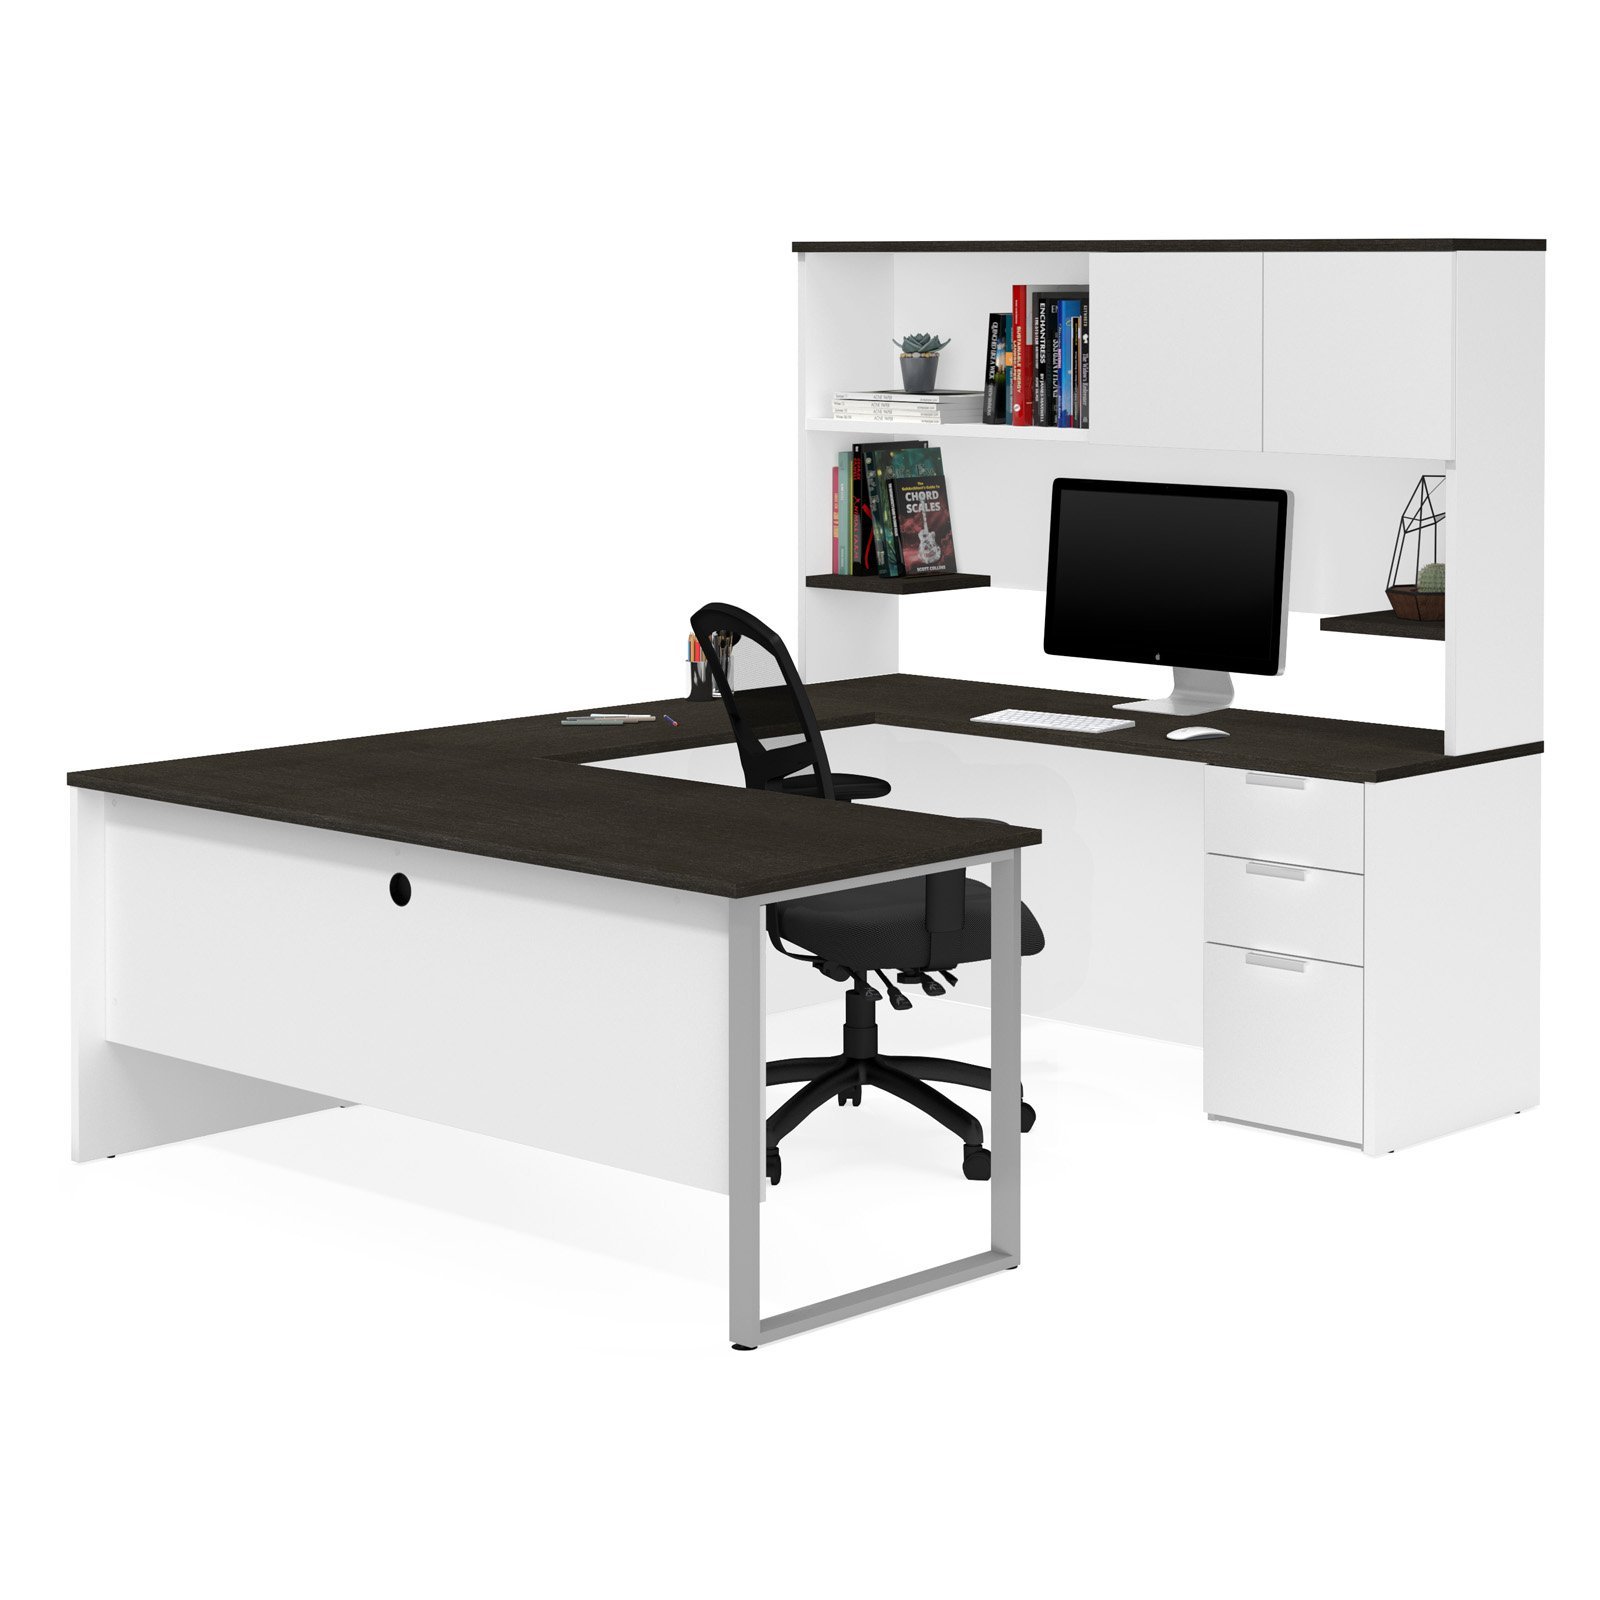 Pro-Concept Plus U-Desk with Hutch in White & Deep Grey